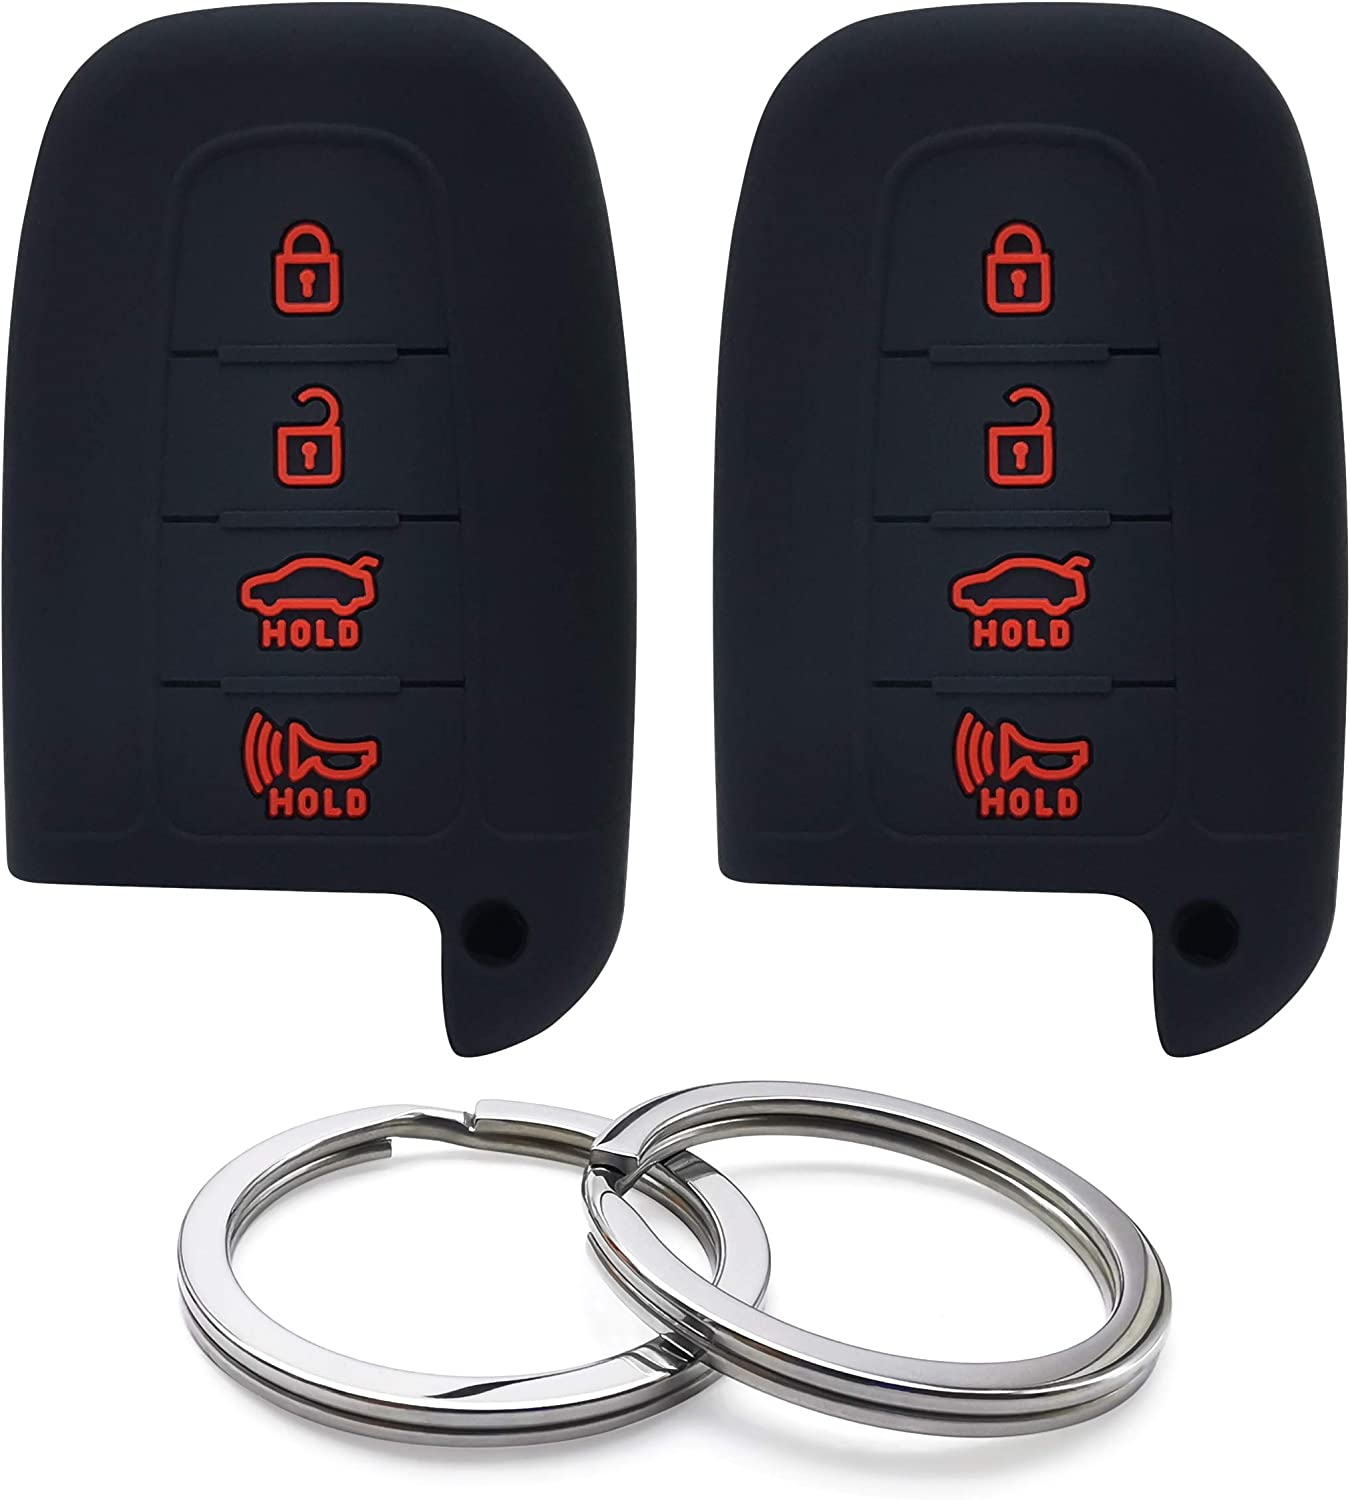 Max 80% OFF GFDesign 2Pcs Silicone 4 Buttons Key Cover Case Keyle Fob Remote San Antonio Mall